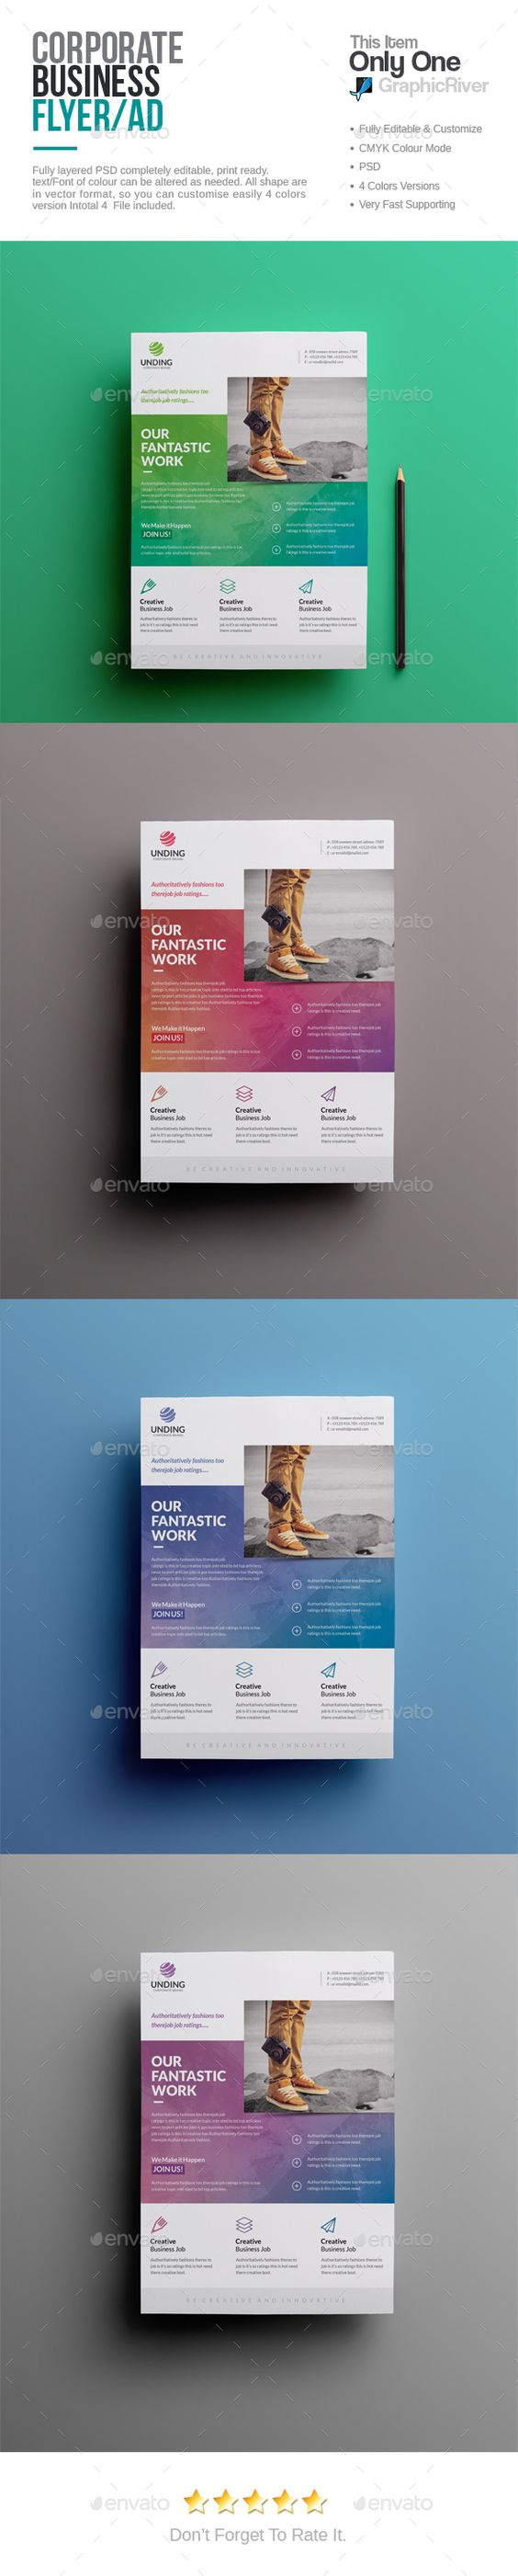 corporate flyer studios flyer template and flyers corporate flyer psd template studio professional ➝